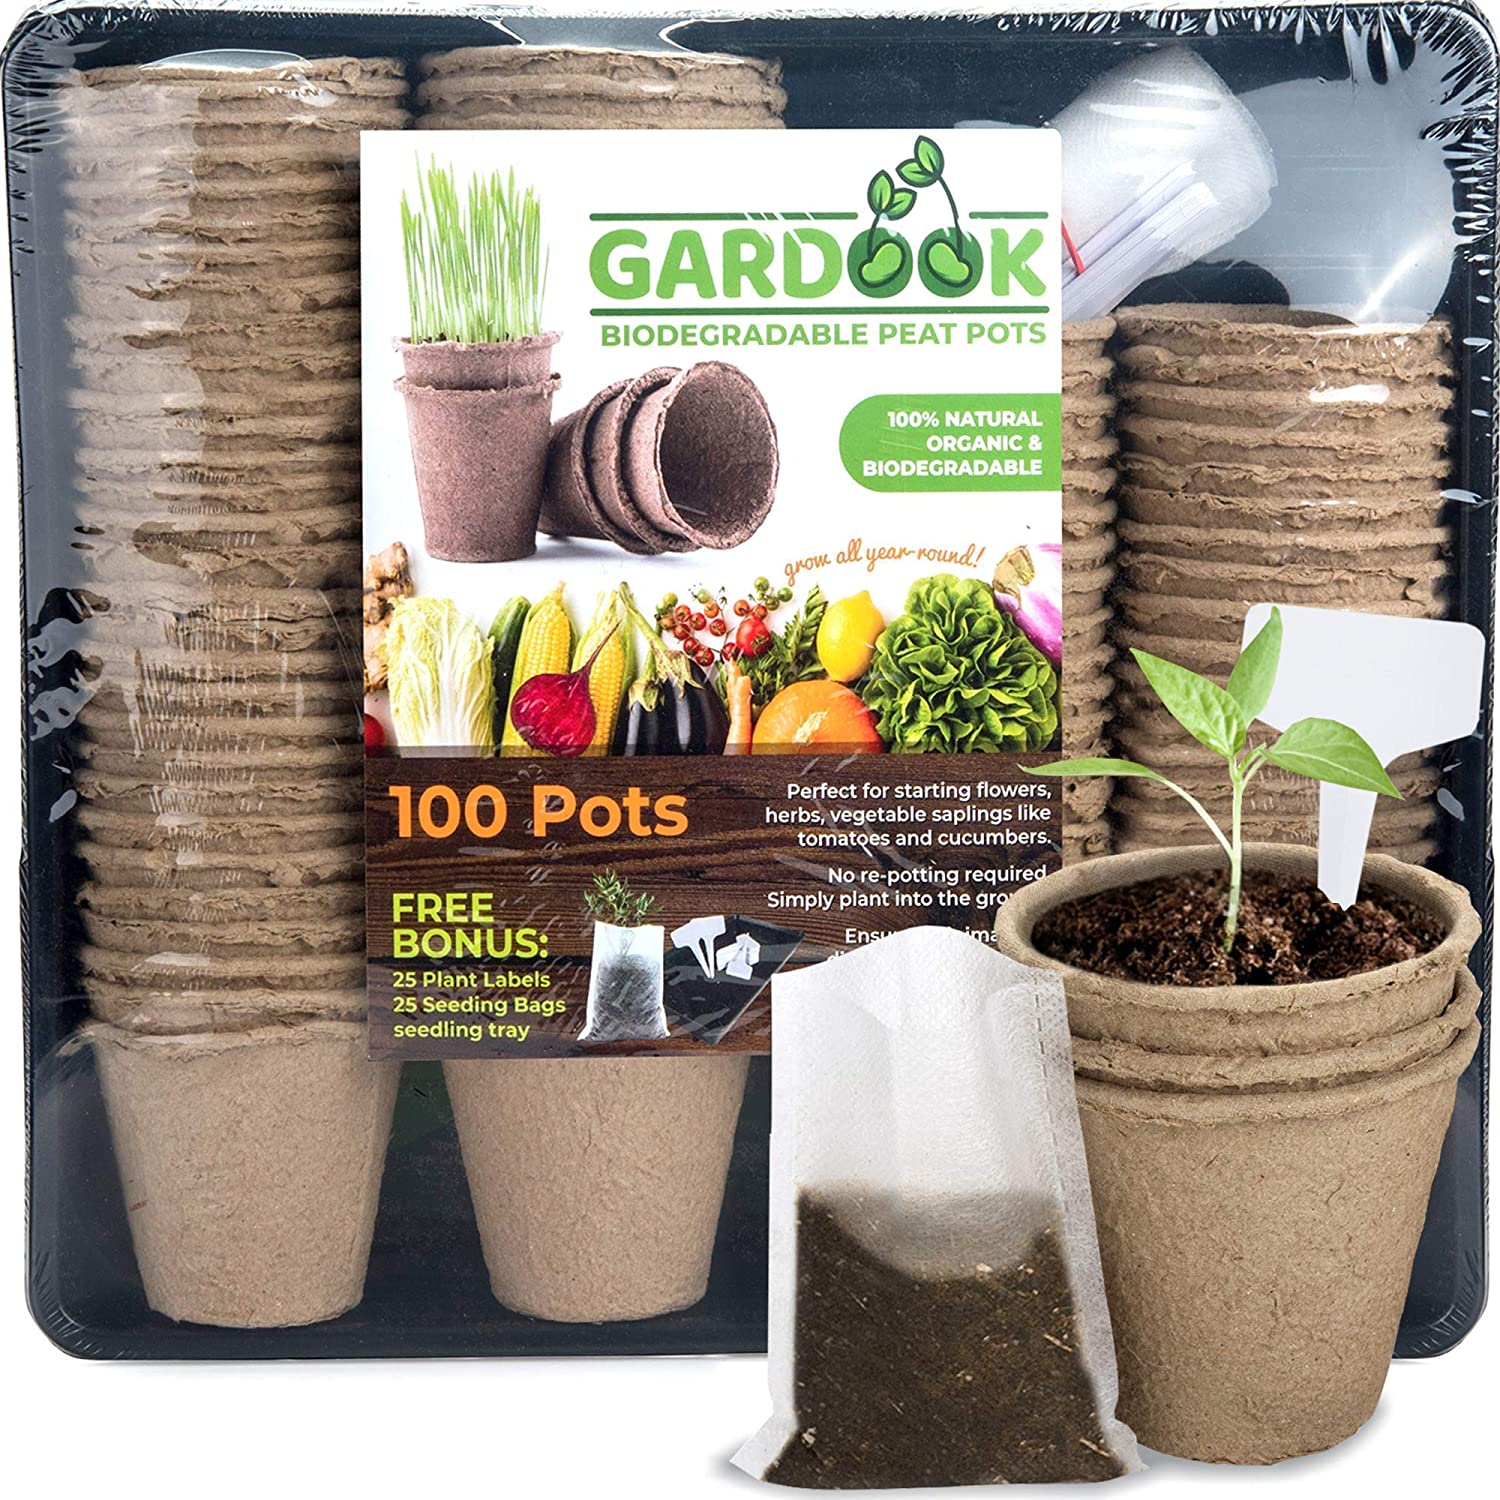 GARDOOK Seed Starter Kit with 100 Peat Pots for Seedlings Seed Starter Tray Plastic Growing Trays 25 Seed Bags and 25 Plant Labels Outdoor or Indoor Herb Garden Nursery Biodegradab